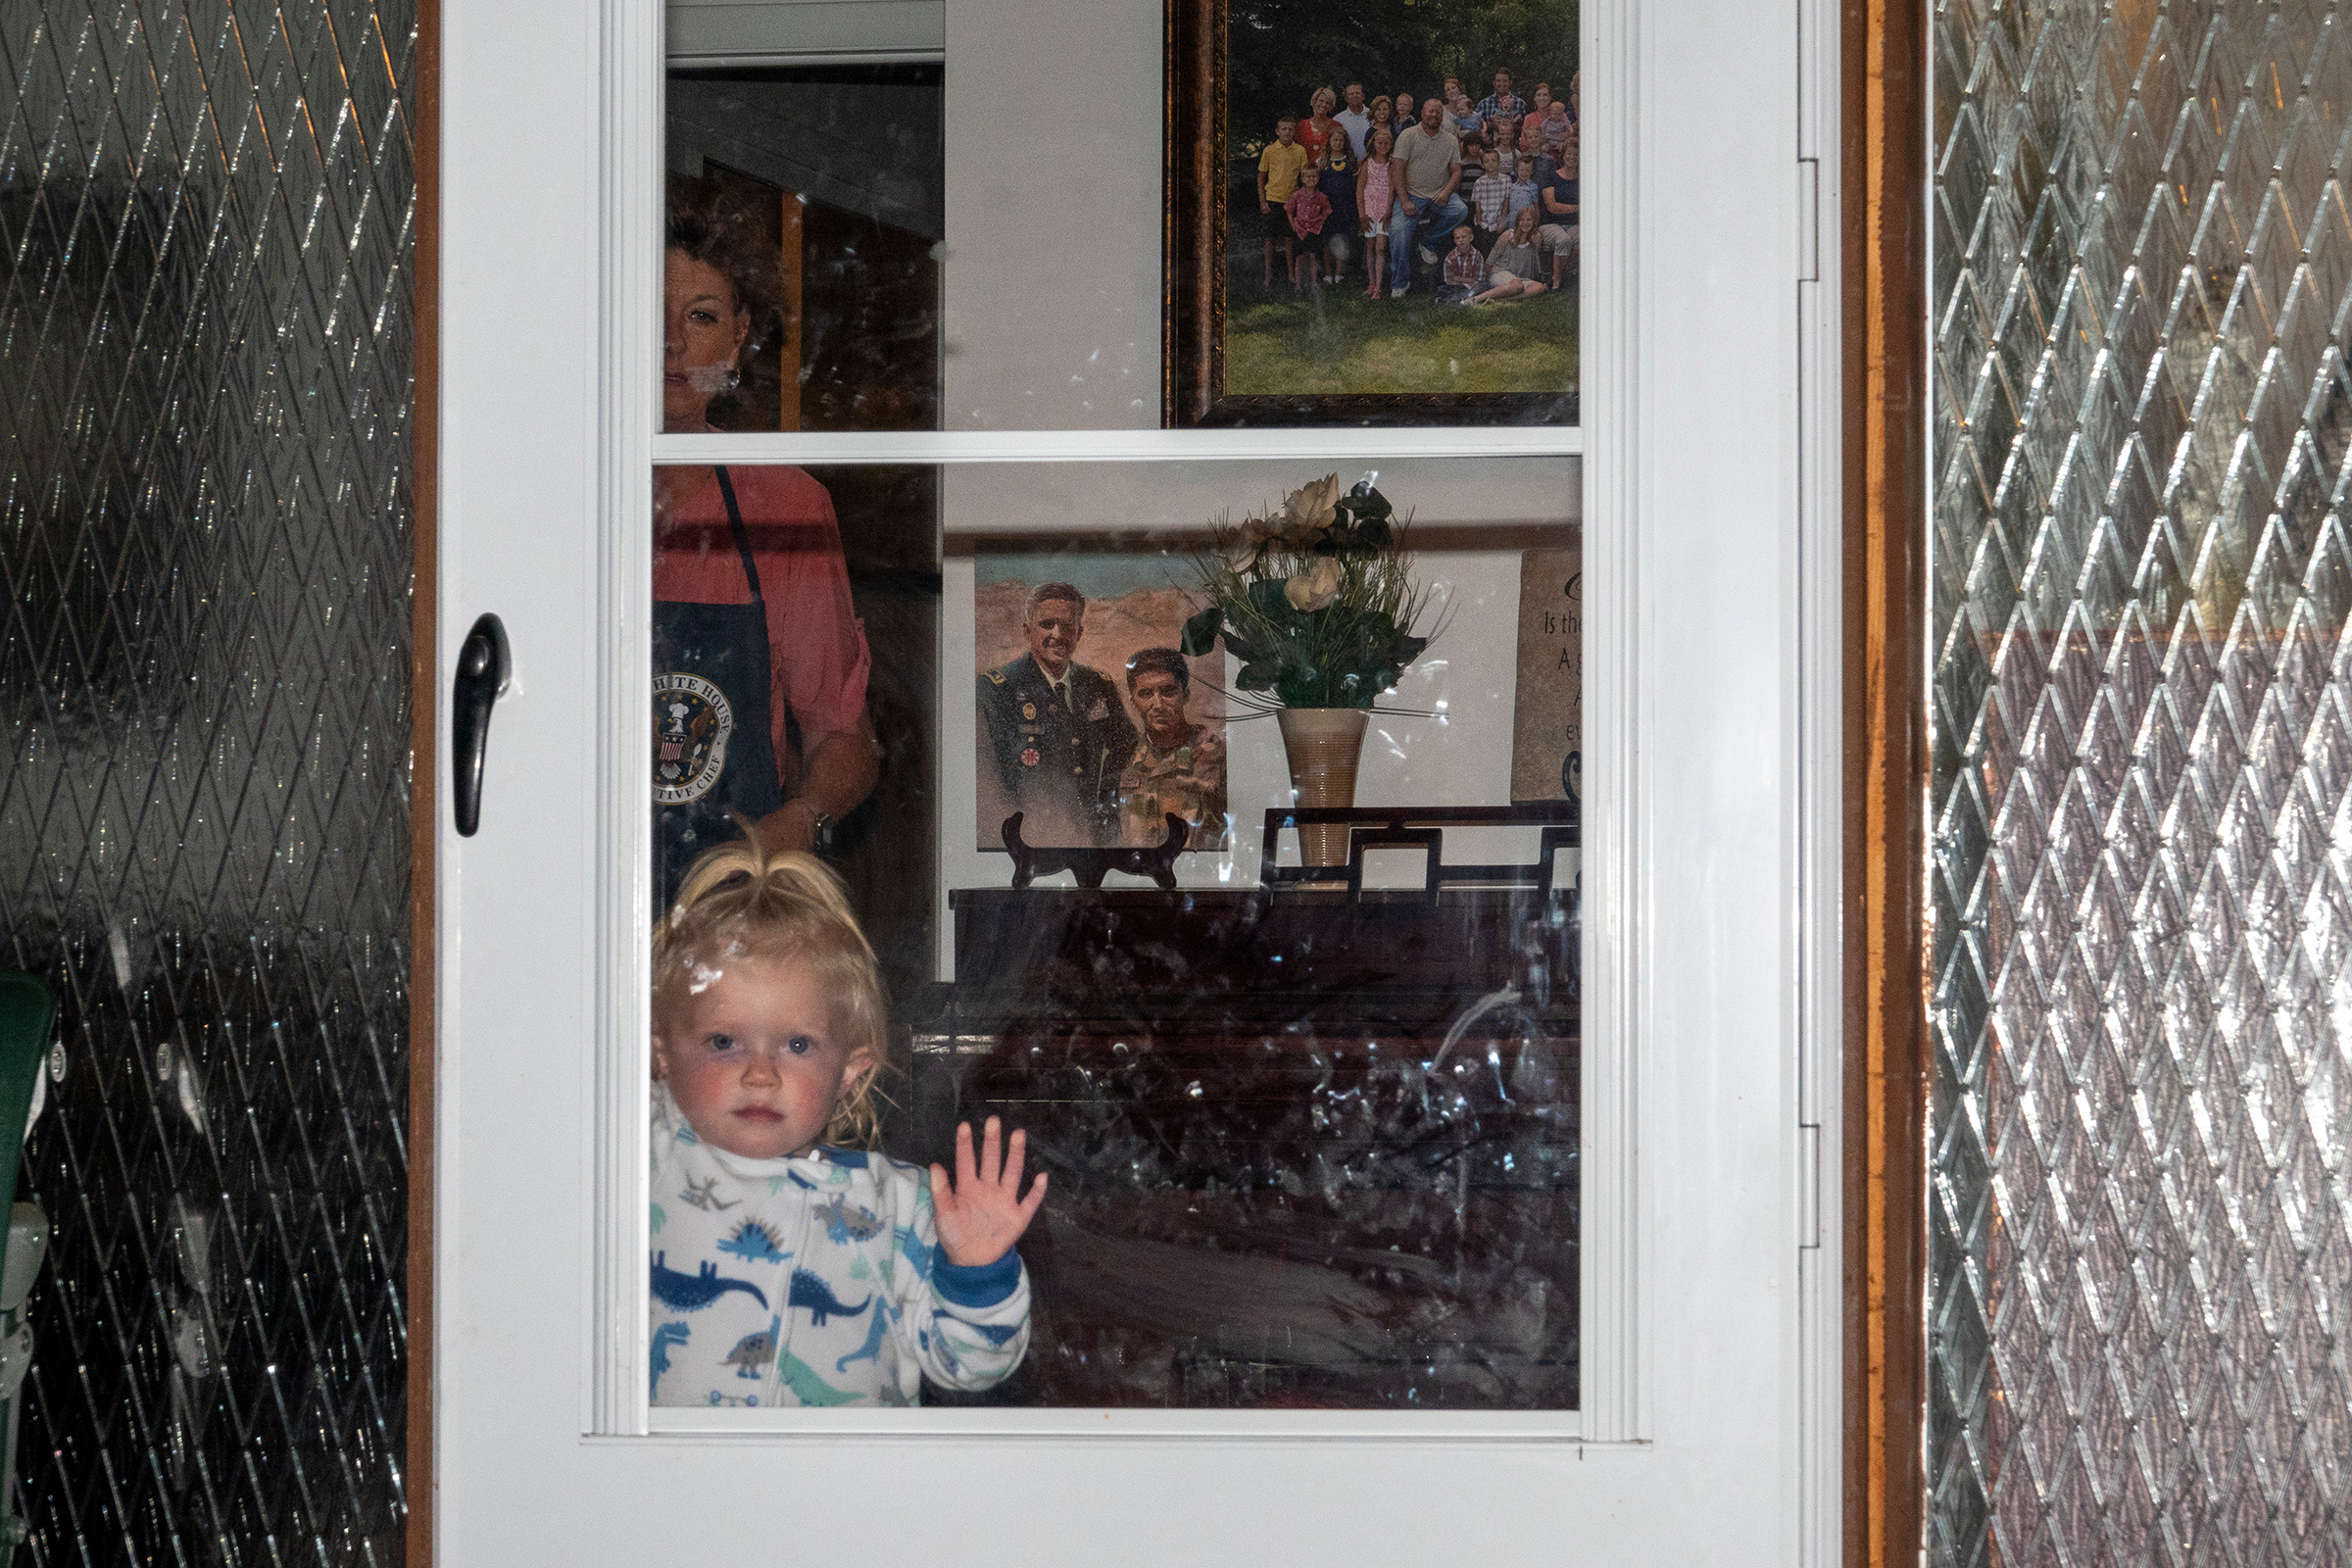 Caroline Taylor at her grandmother's house in North Ogden, Utah, in September. Her father, Brent Taylor, was killed while serving in Afghanistan in November 2018. Oct. 21 issue.